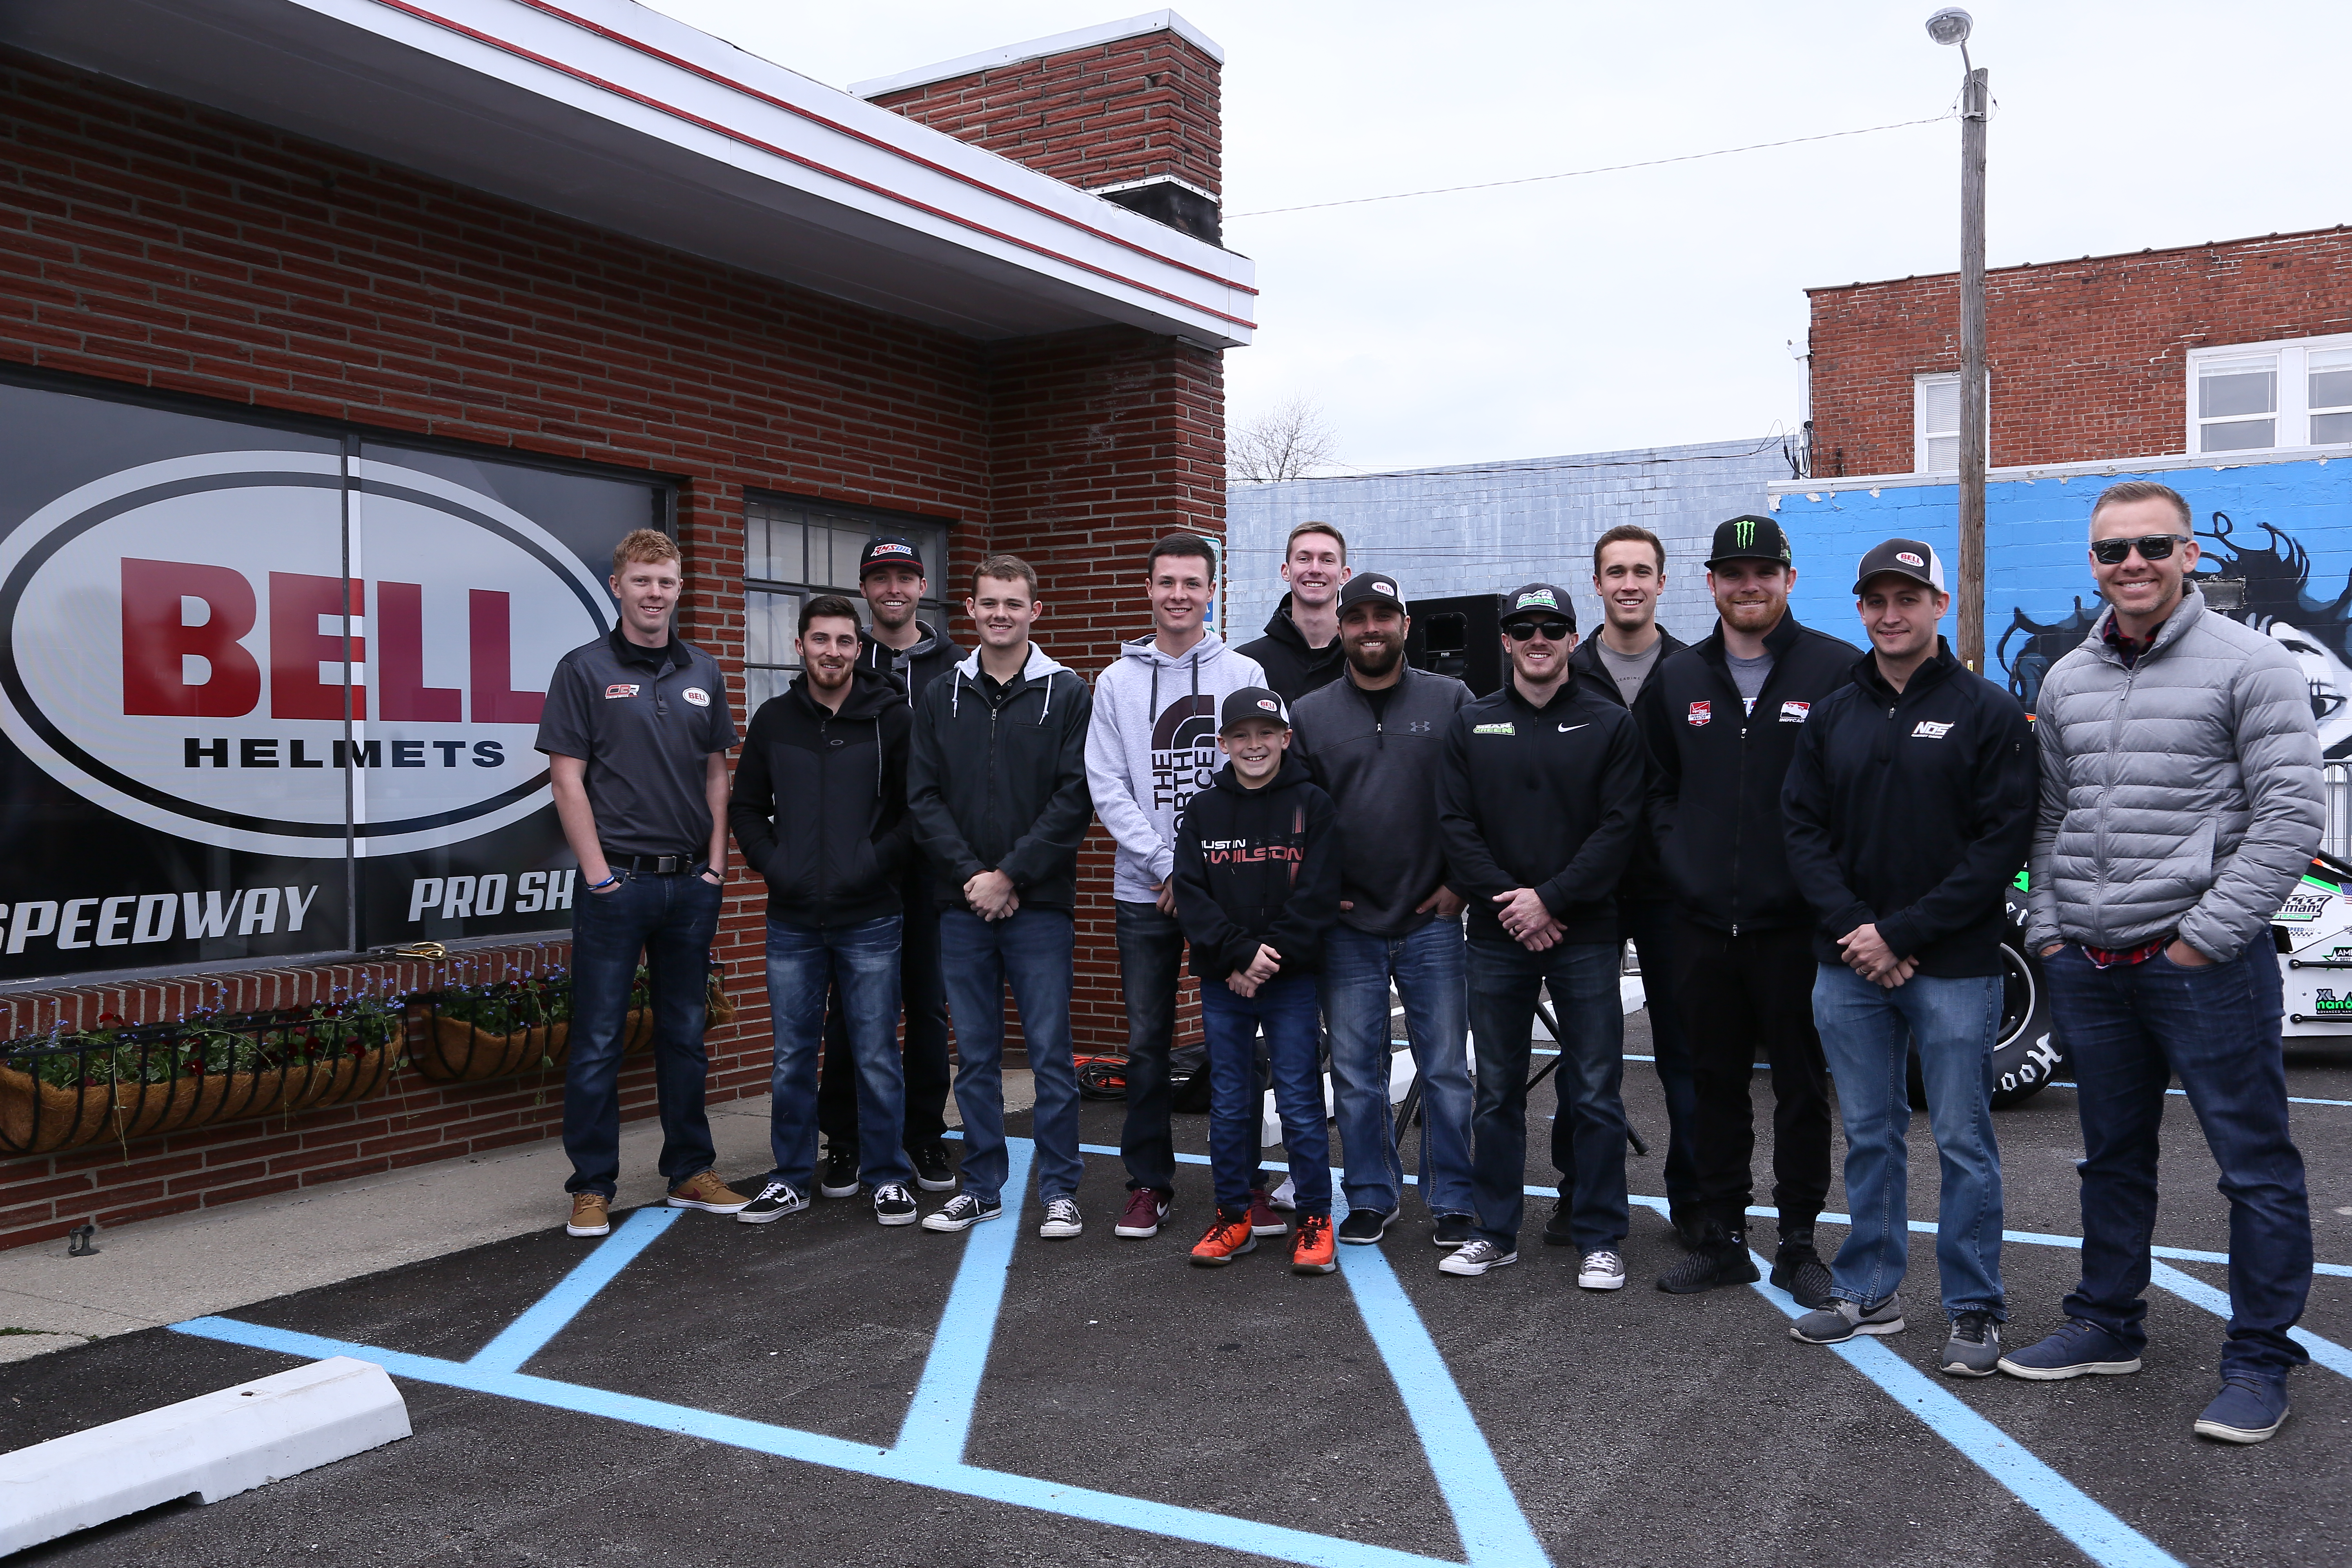 Bell Racing USA Announces New Location in Speedway, Indiana